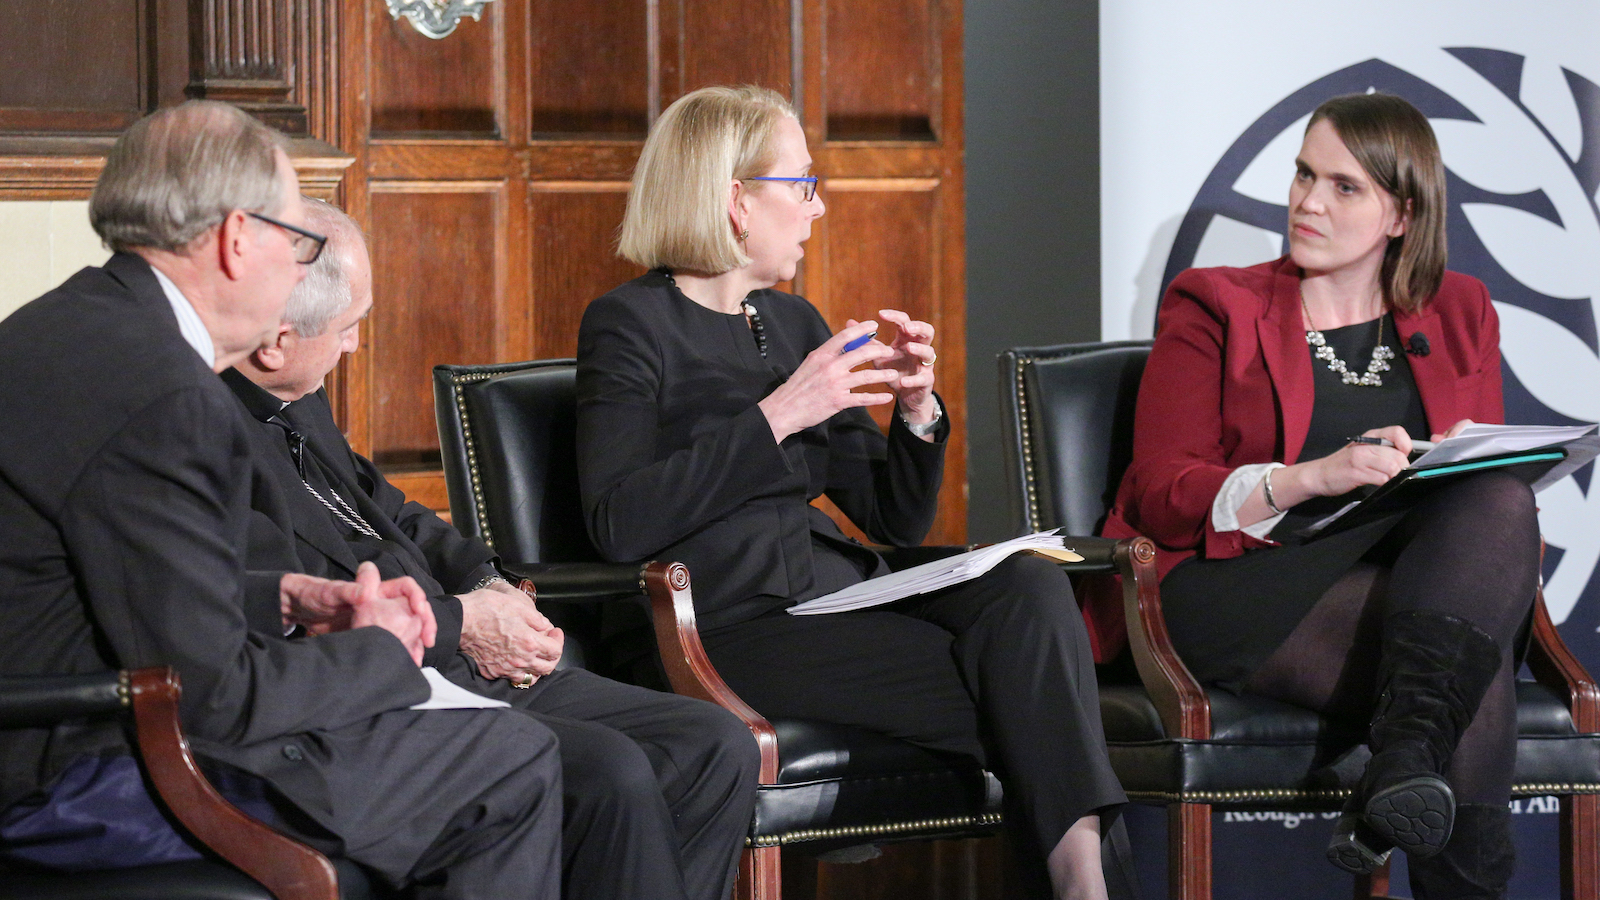 Two-Day Event Highlights Catholic Church's Role in Nuclear Disarmament